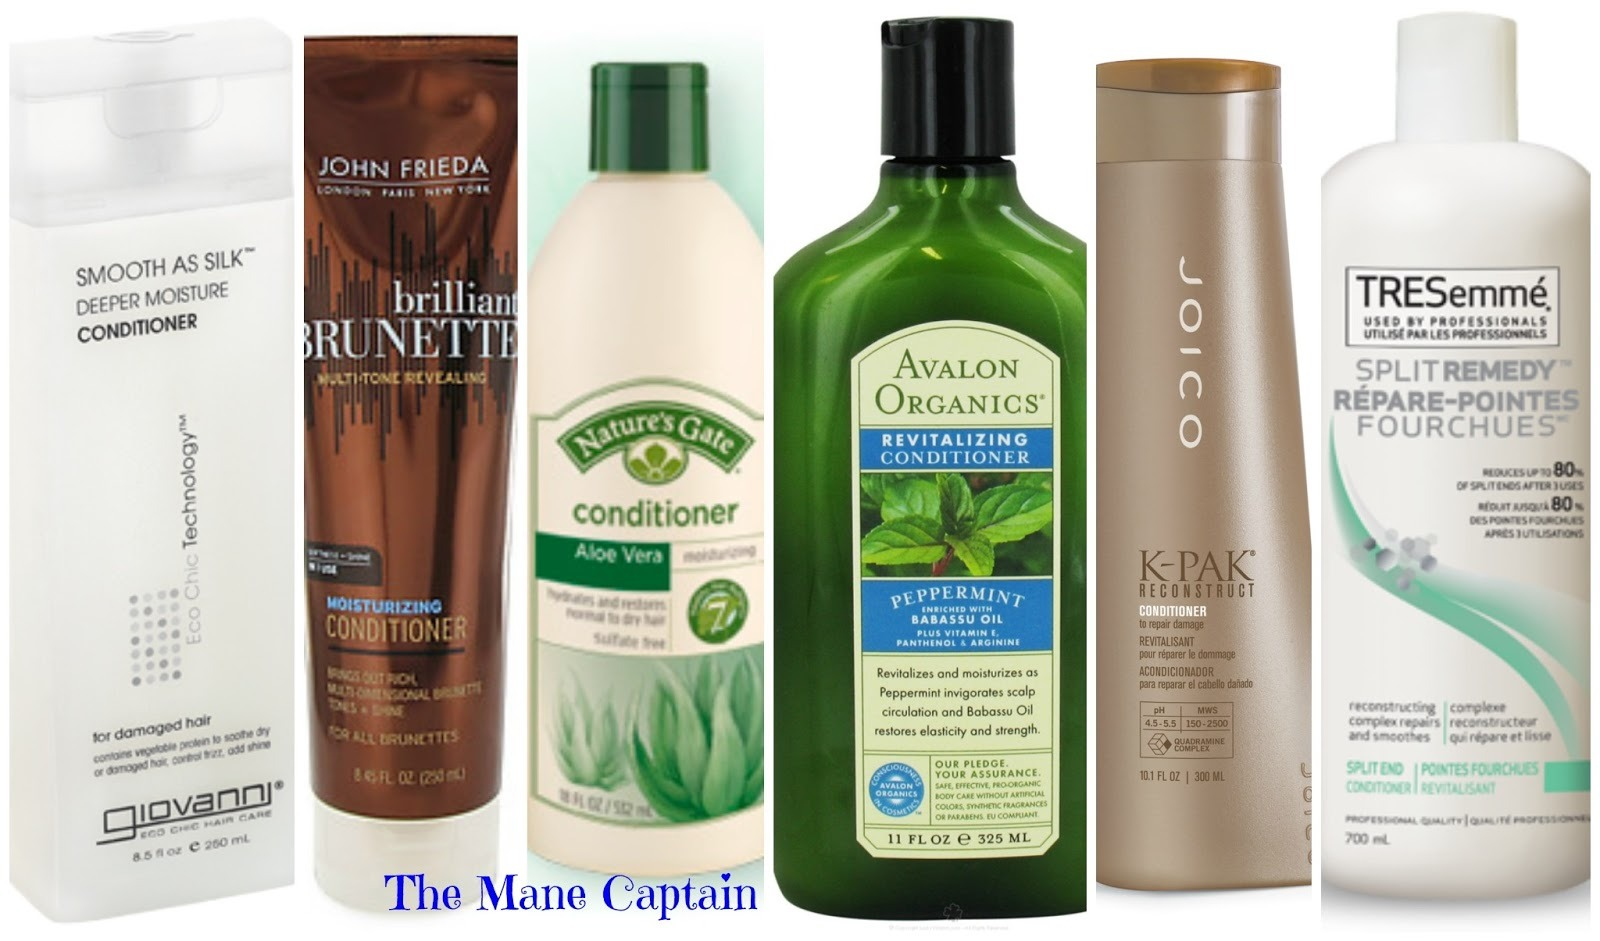 Conditioner: it works but it's tedious so use as a back up plan. Apply to hair and comb out as much as you can. Continue process.